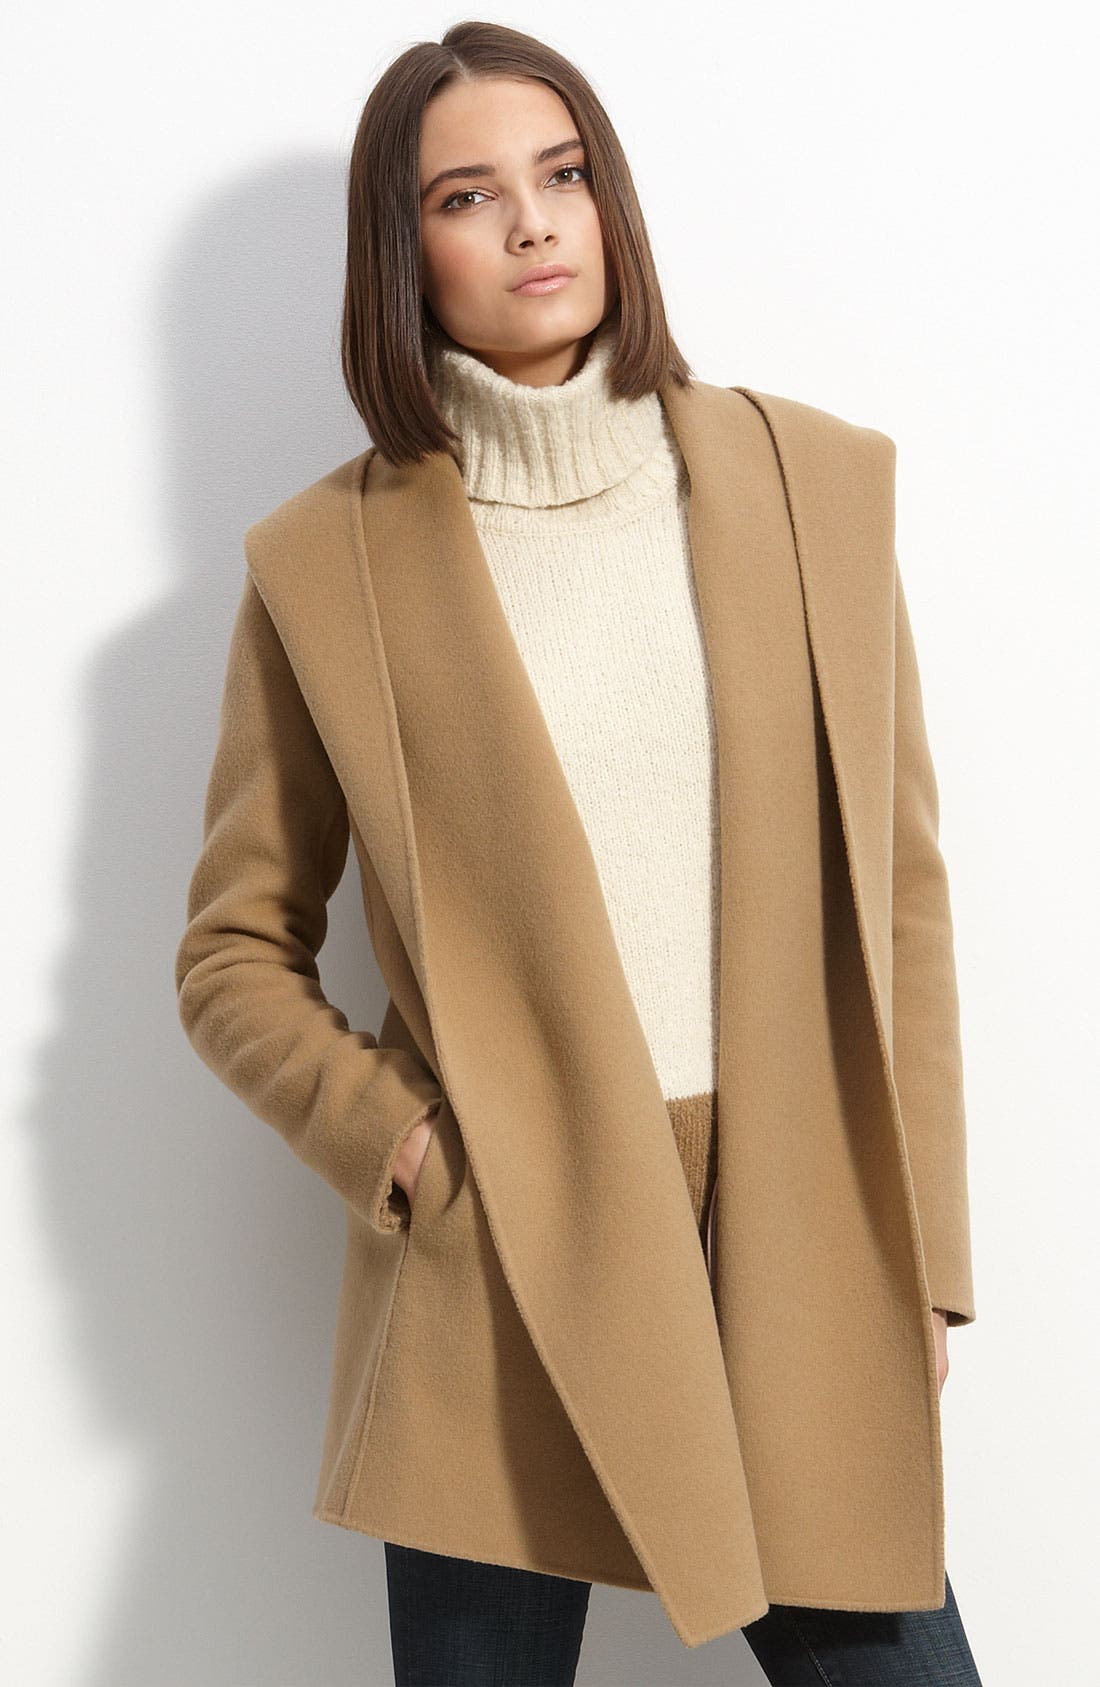 Main Image - Vince Double Face Wool Blend Jacket with Hood